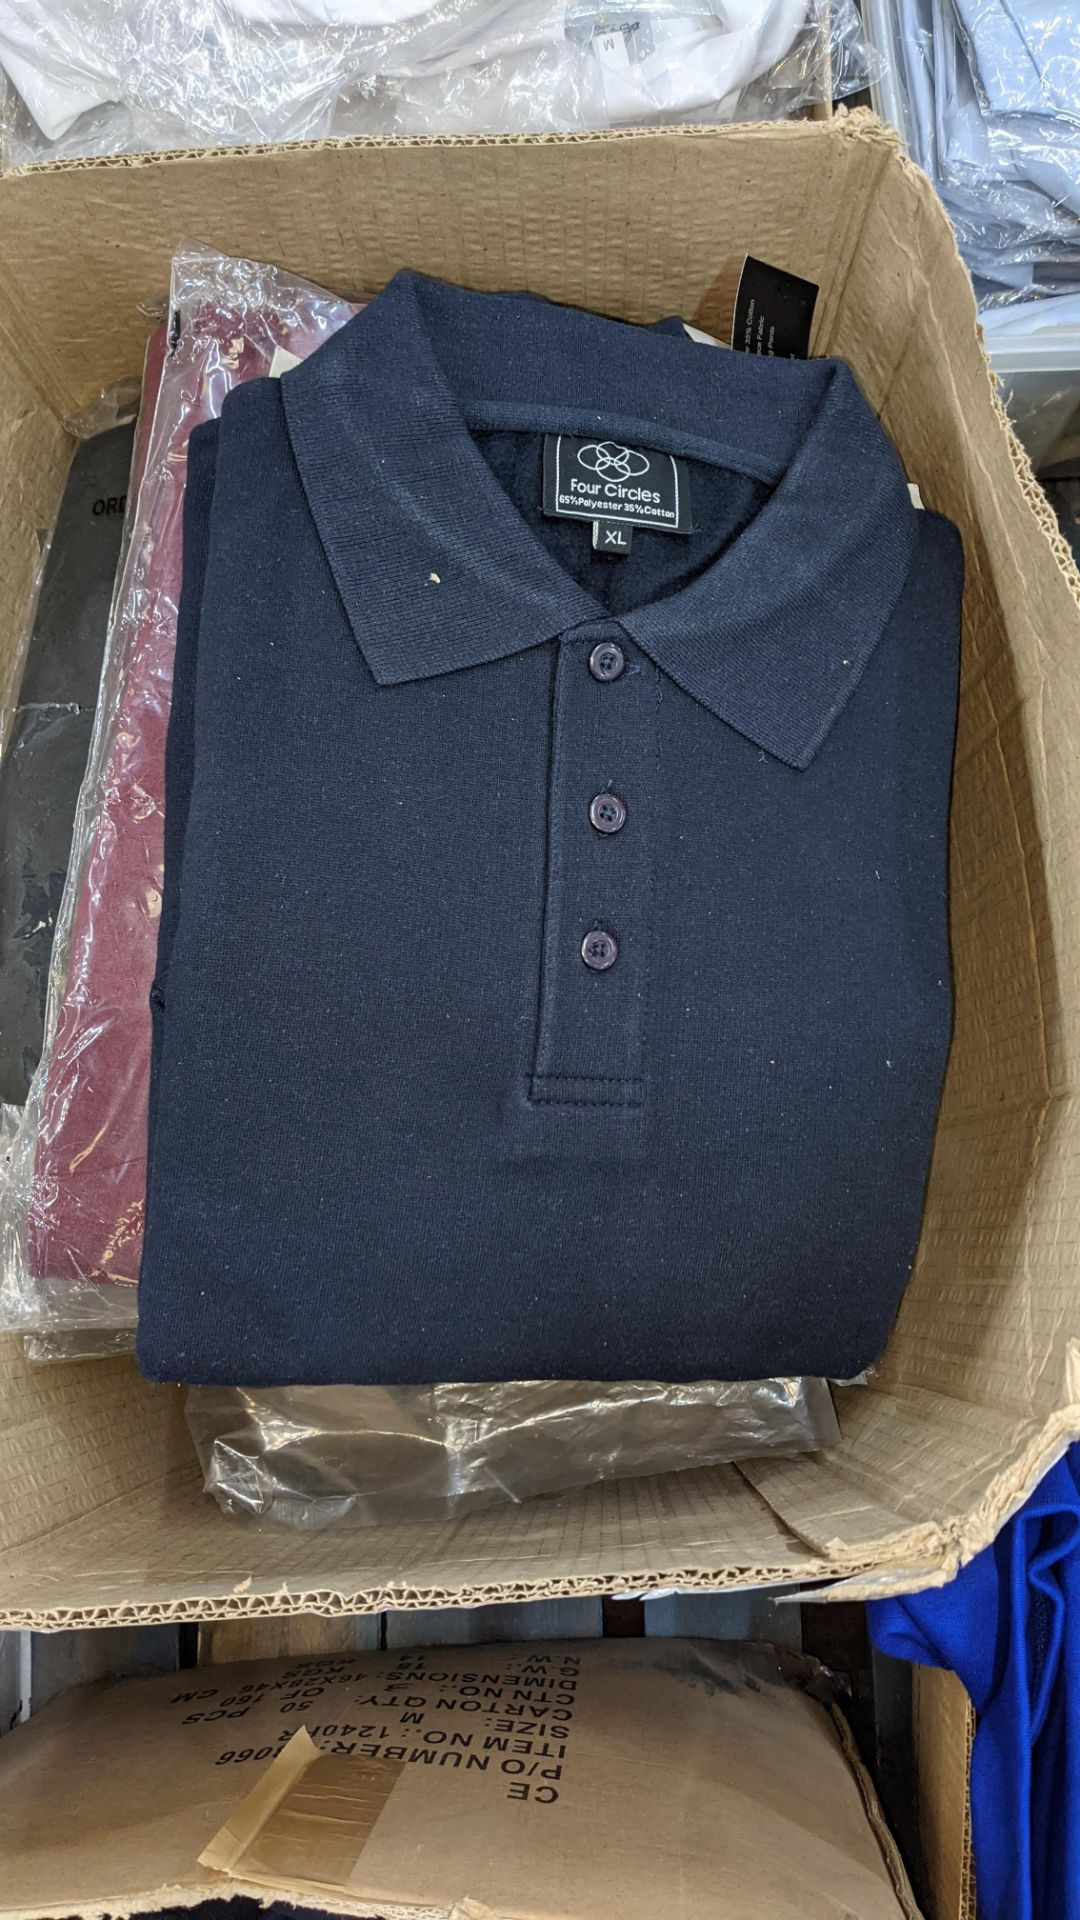 Approx 17 off assorted polo shirts by Four Circles in blue, burgundy & grey - 1 large box - Image 3 of 5